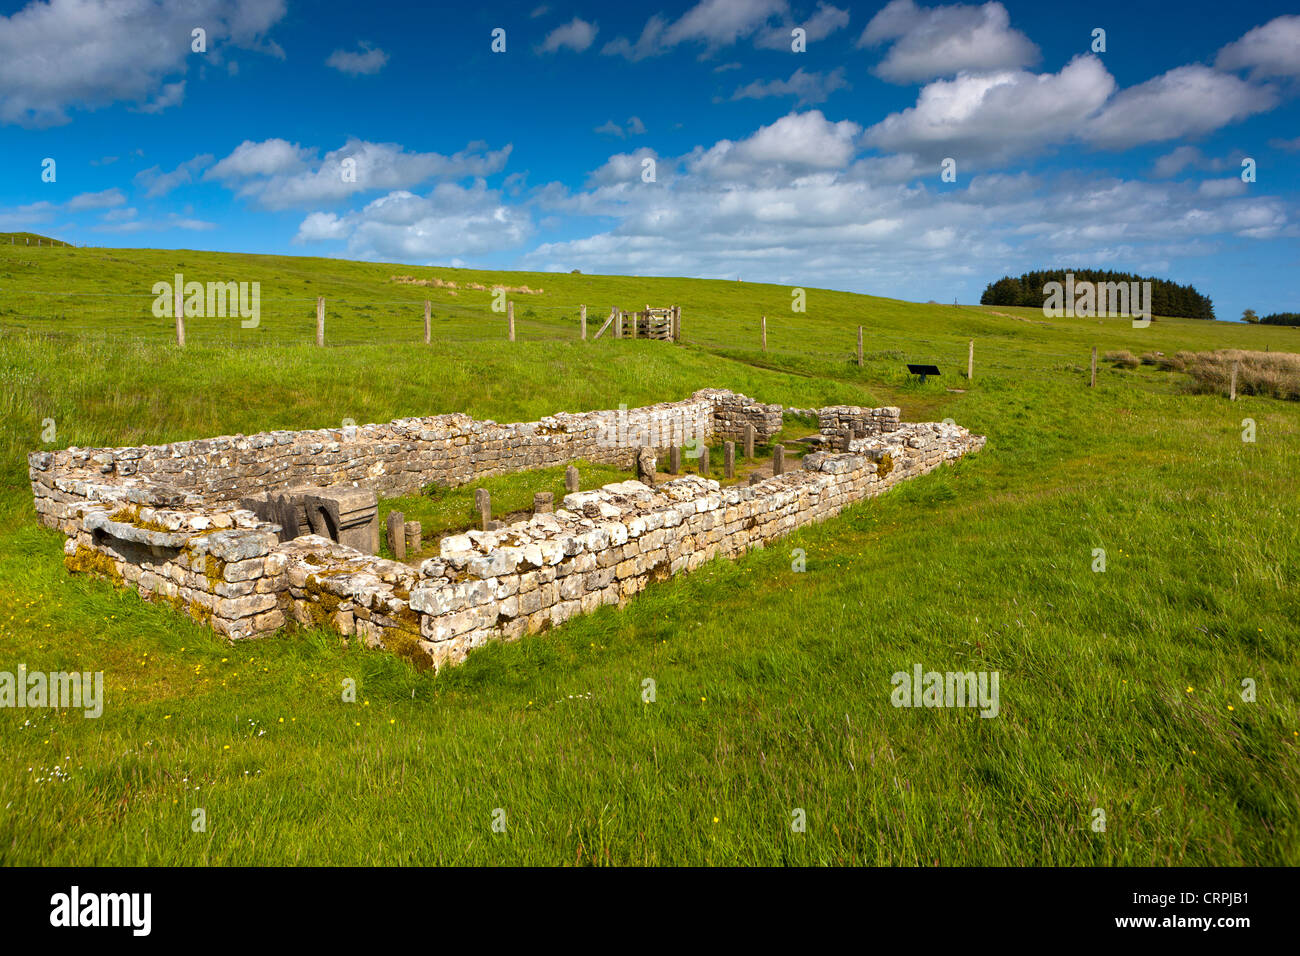 The Temple of Mithras (the Mithraeum) near Carrawburgh fort along Hadrian's Wall. - Stock Image